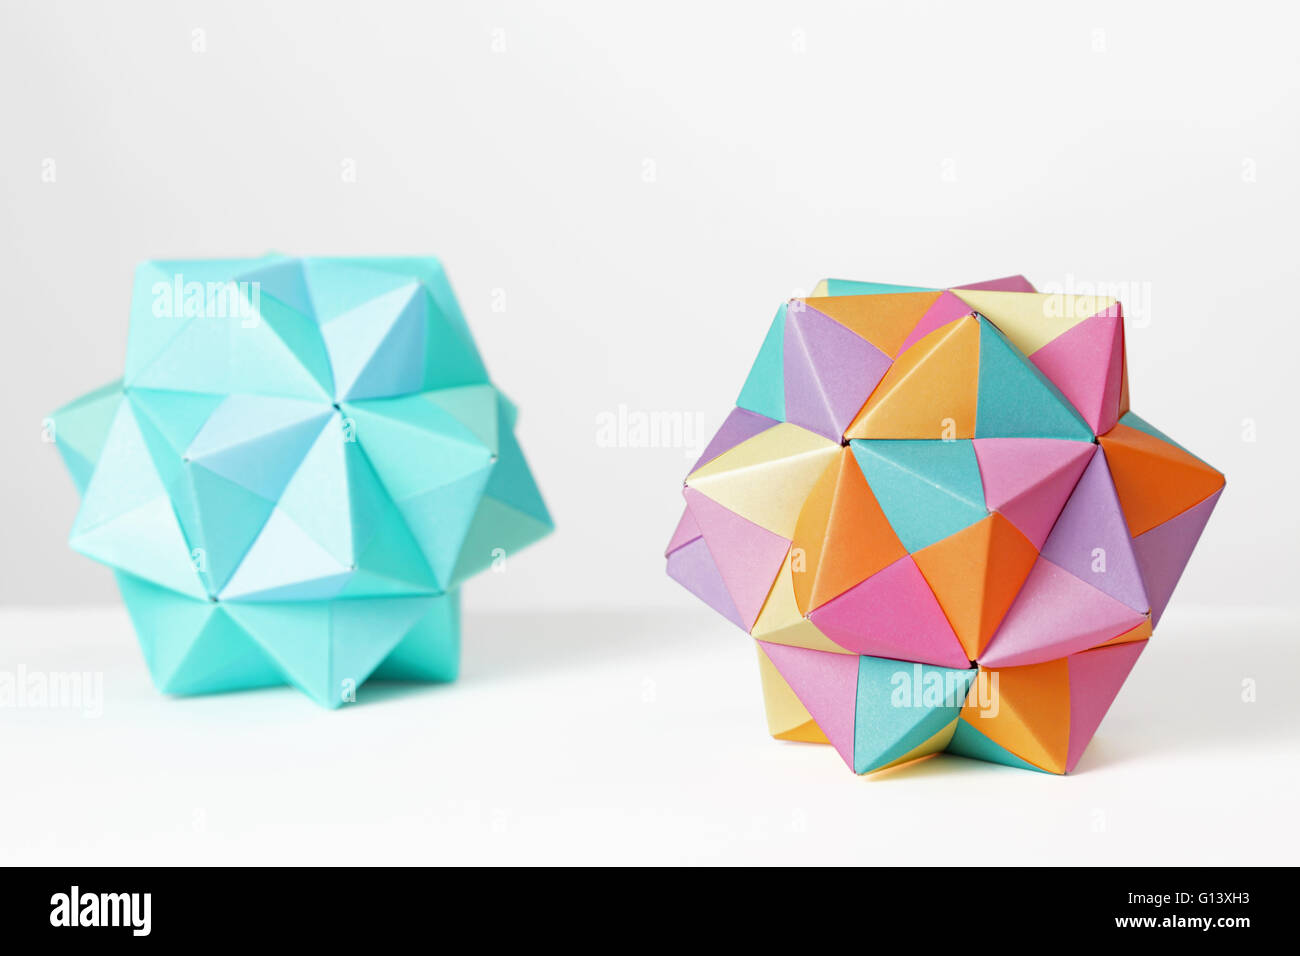 Modular Origami: How to Make a Cube, Octahedron & Icosahedron from ... | 956x1300